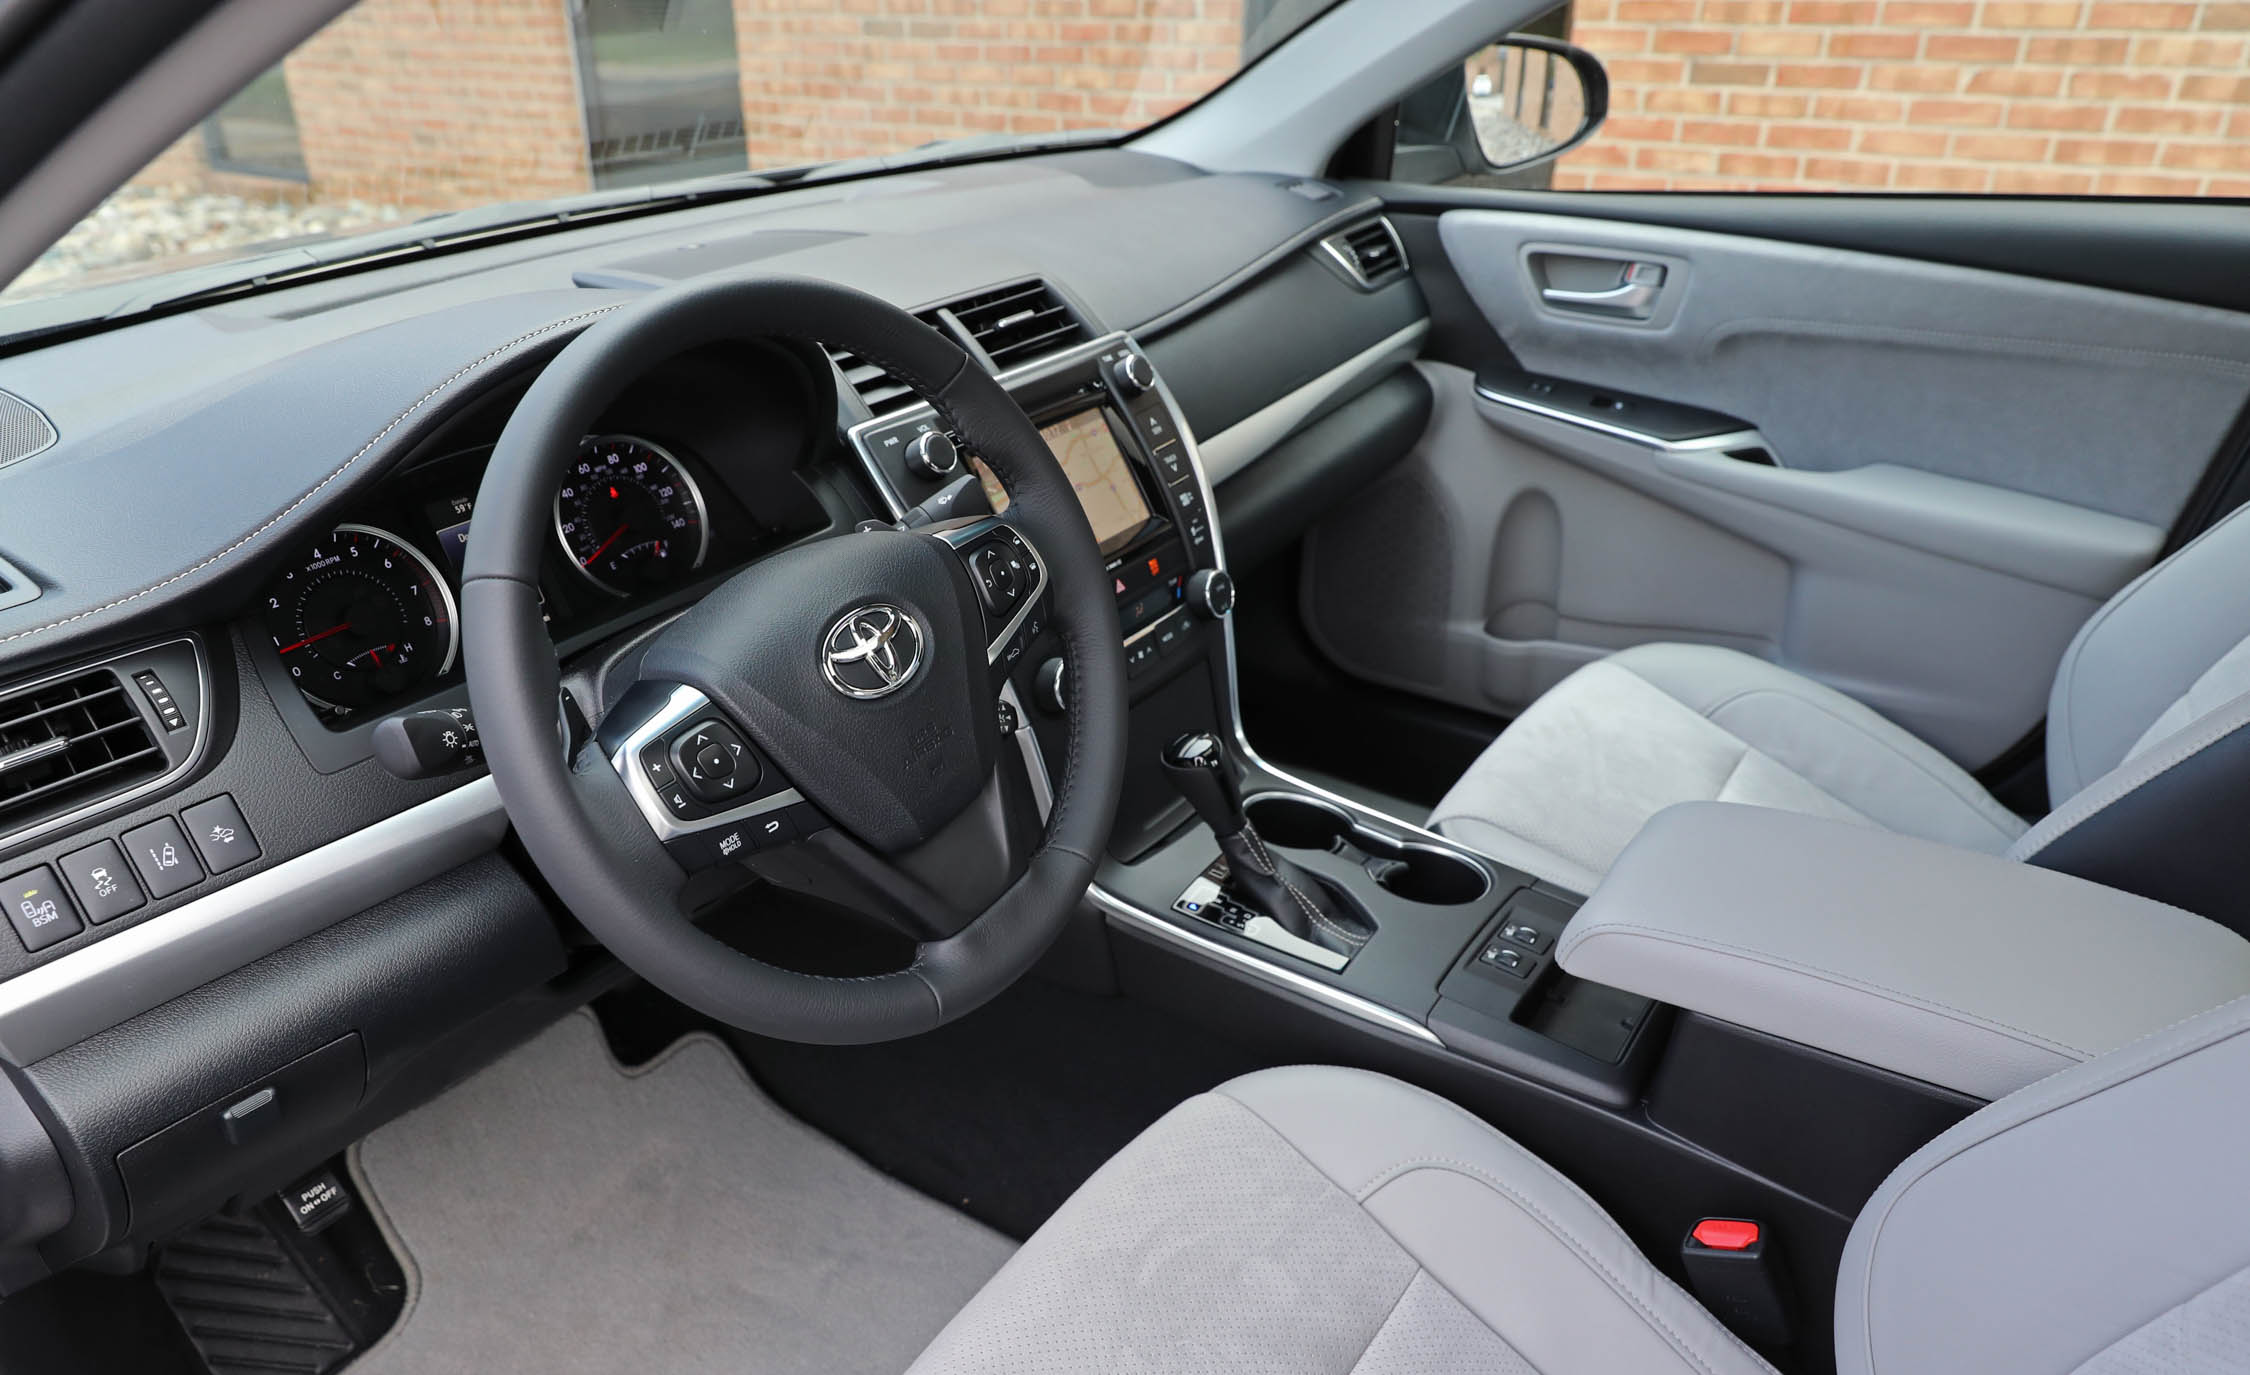 2017 Toyota Camry Interior Cockpit (View 18 of 37)